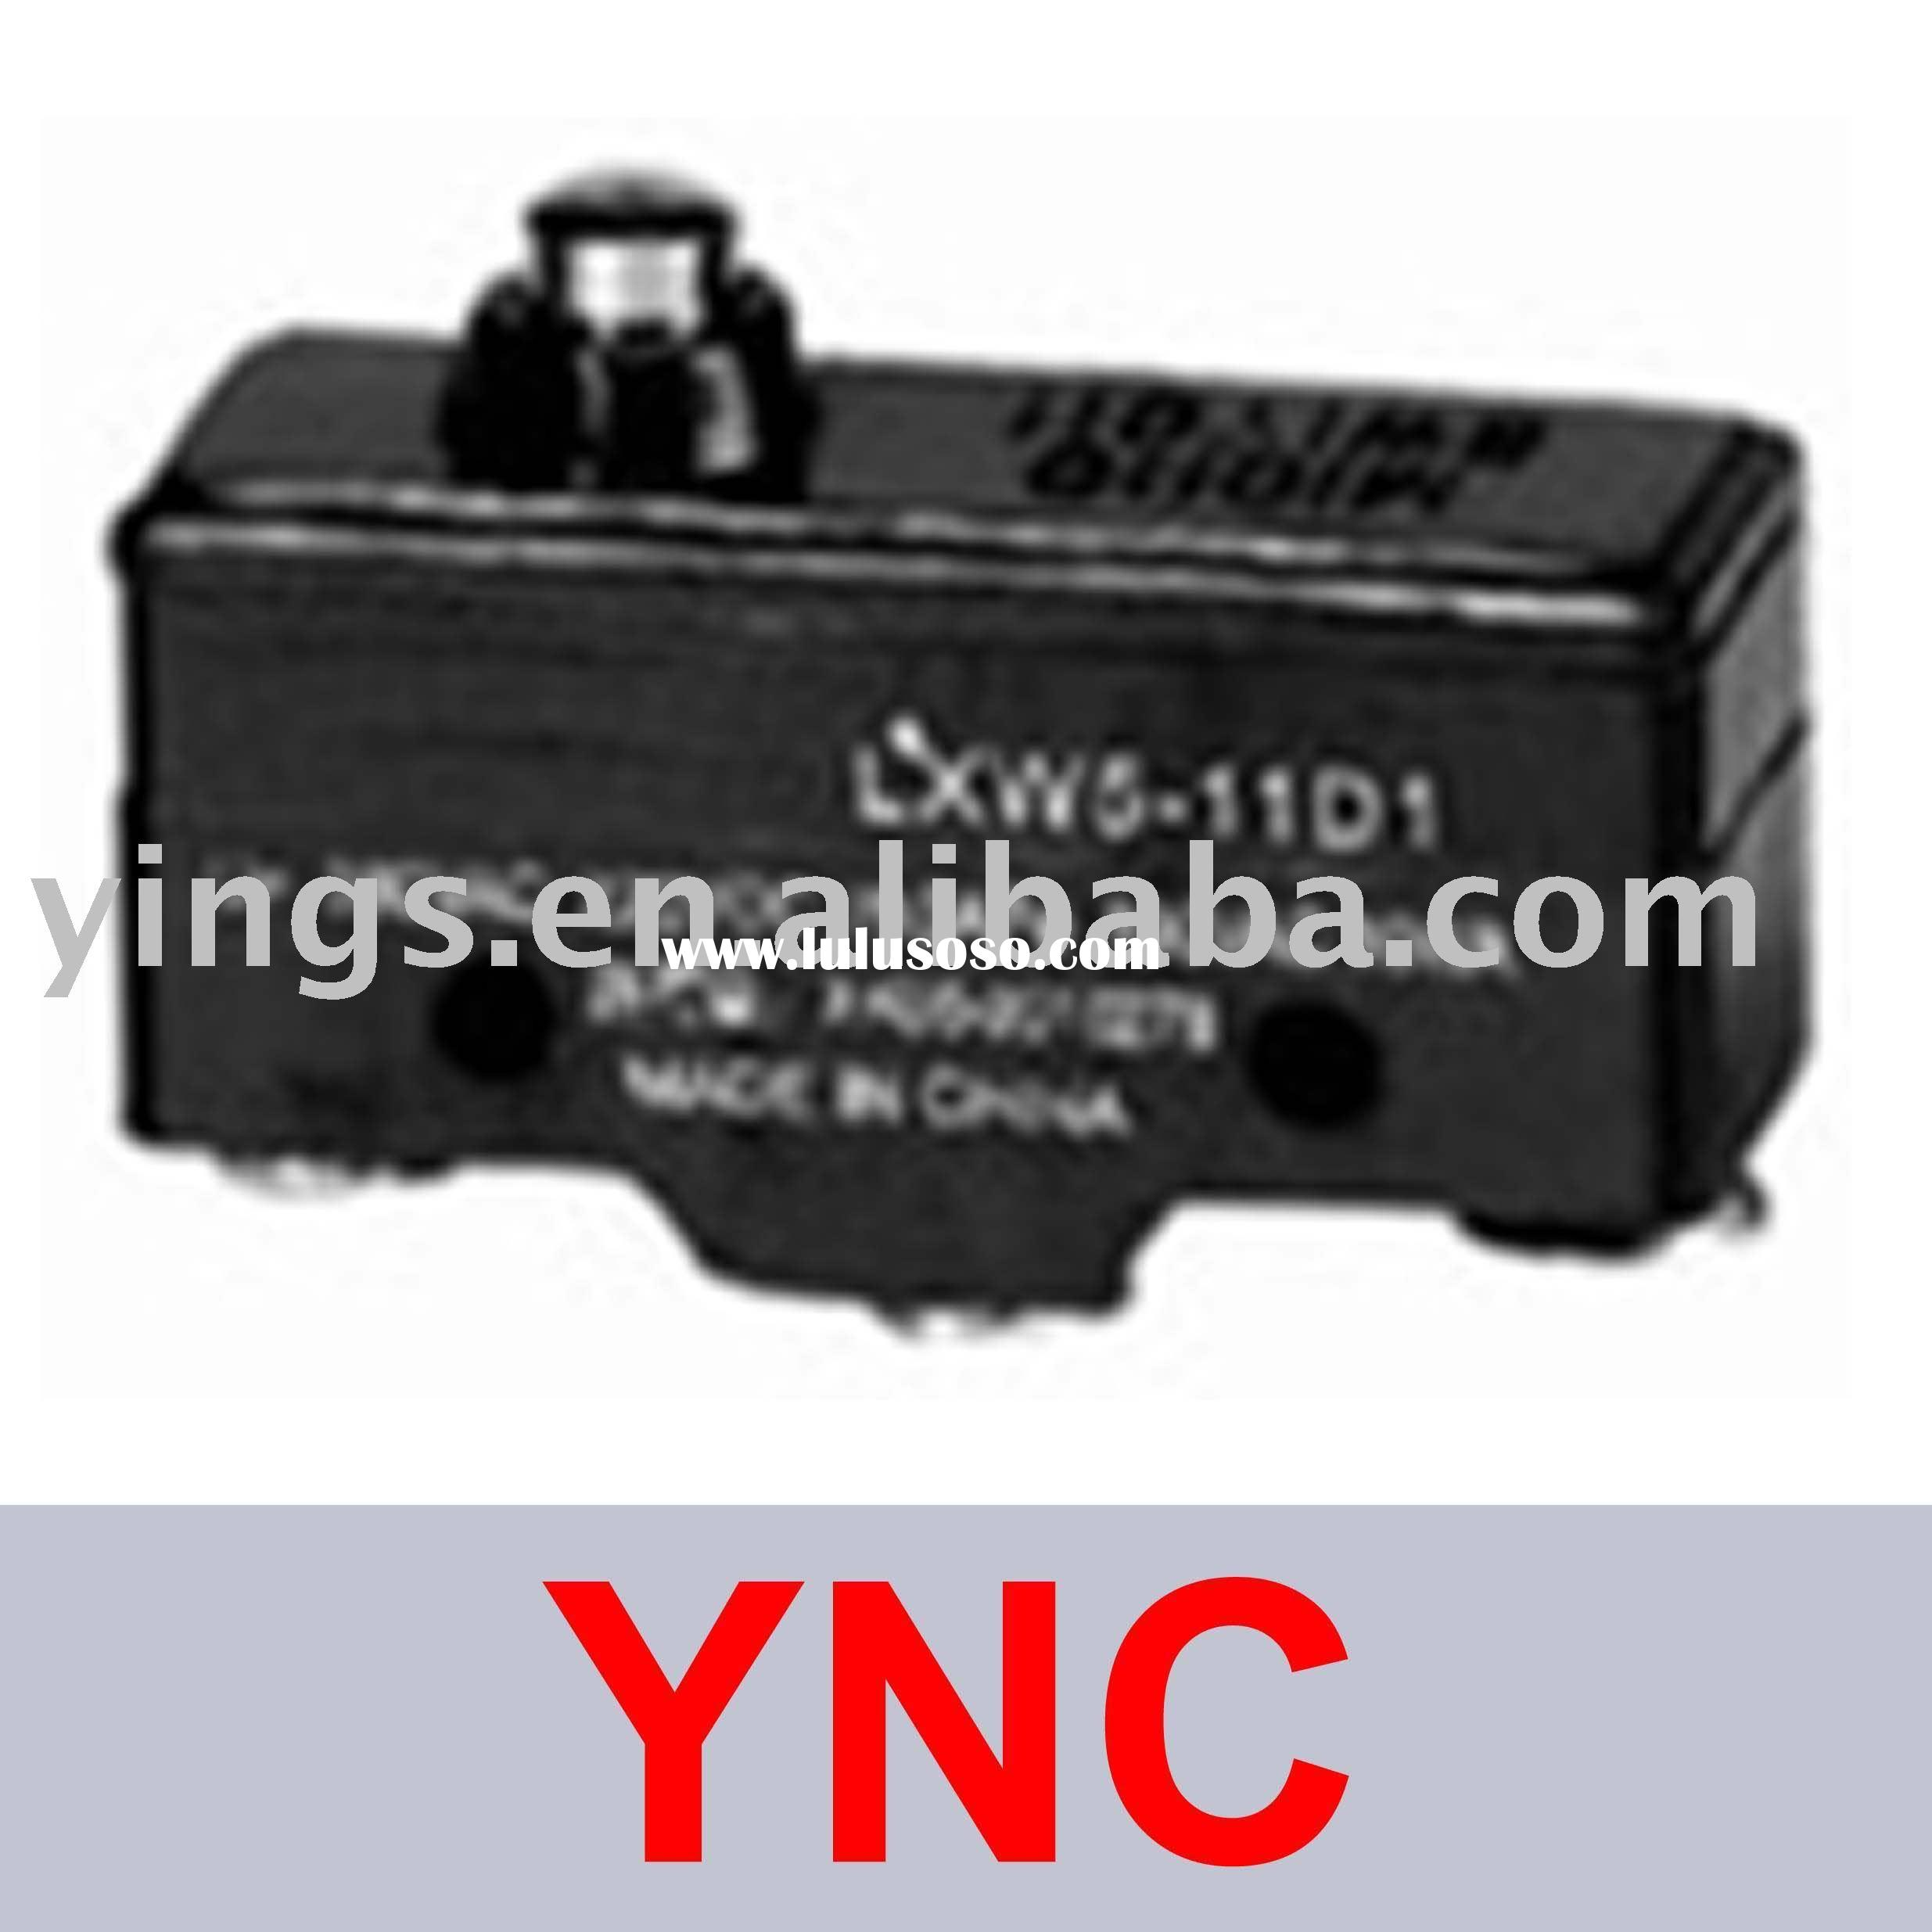 LXW5 Series micro switch LXW5-D1 LXW5-11D1/L Short spring plunger type